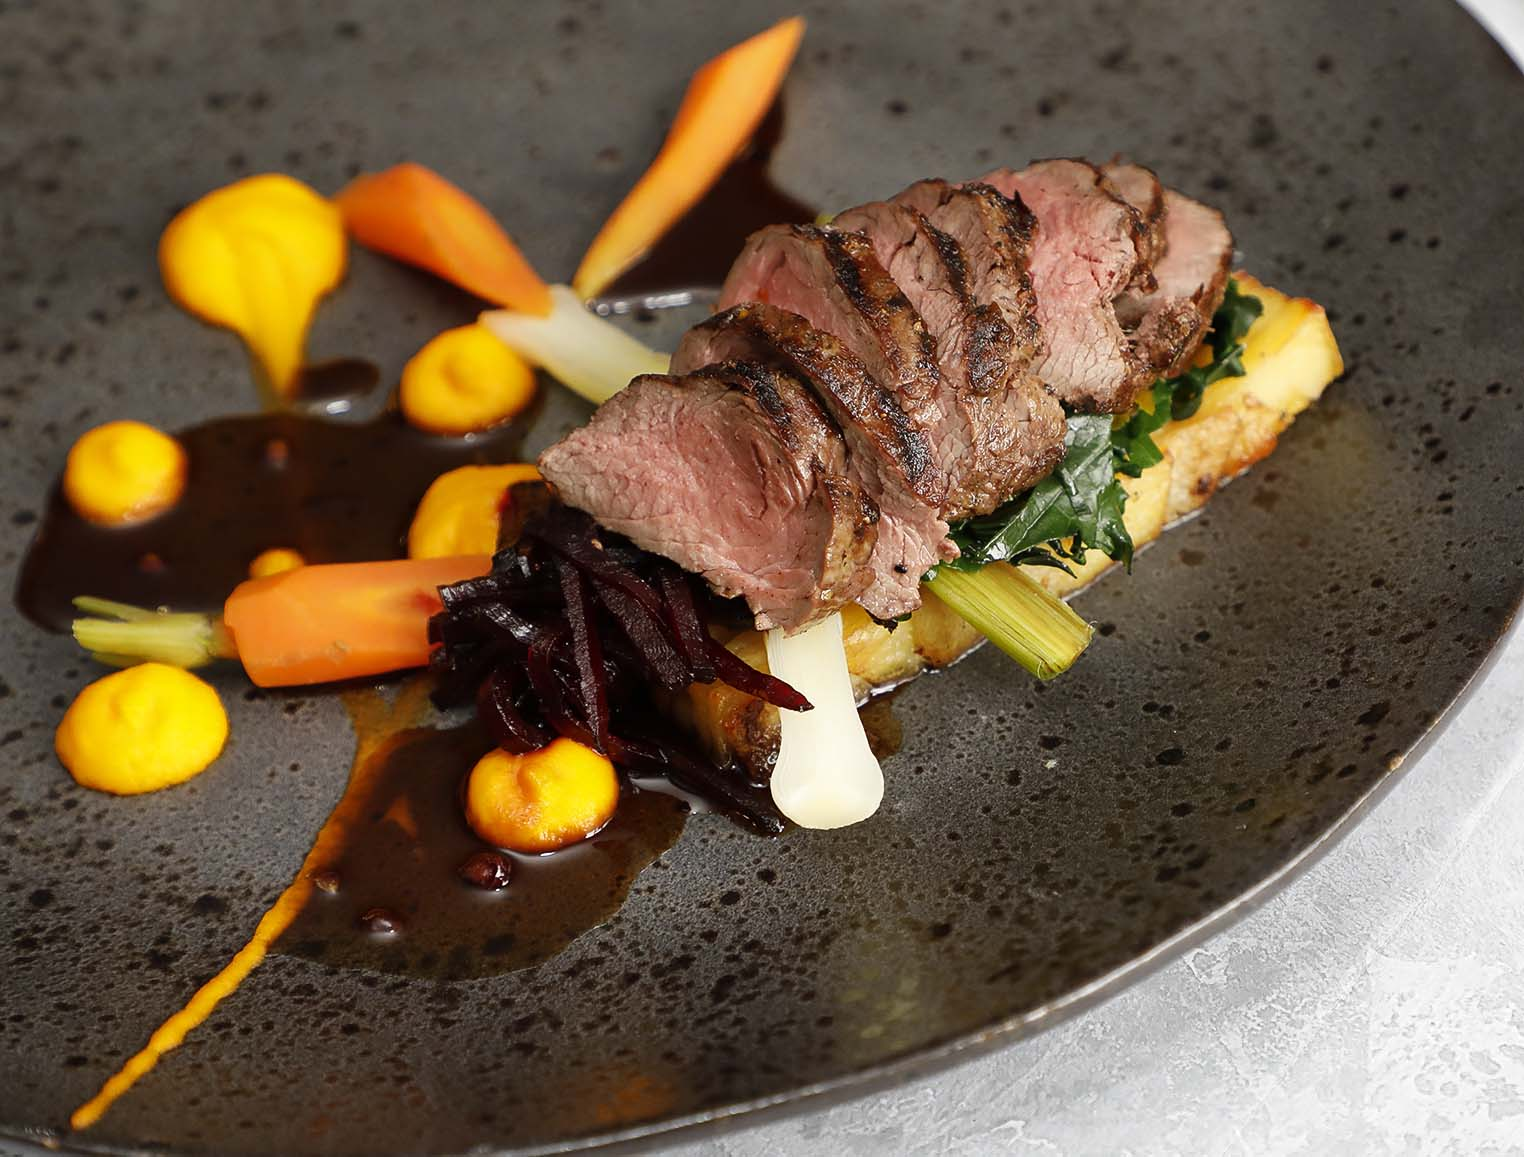 Venison steak with curly kale, sweet pickled beetroot, carrot purée and juniper jus.